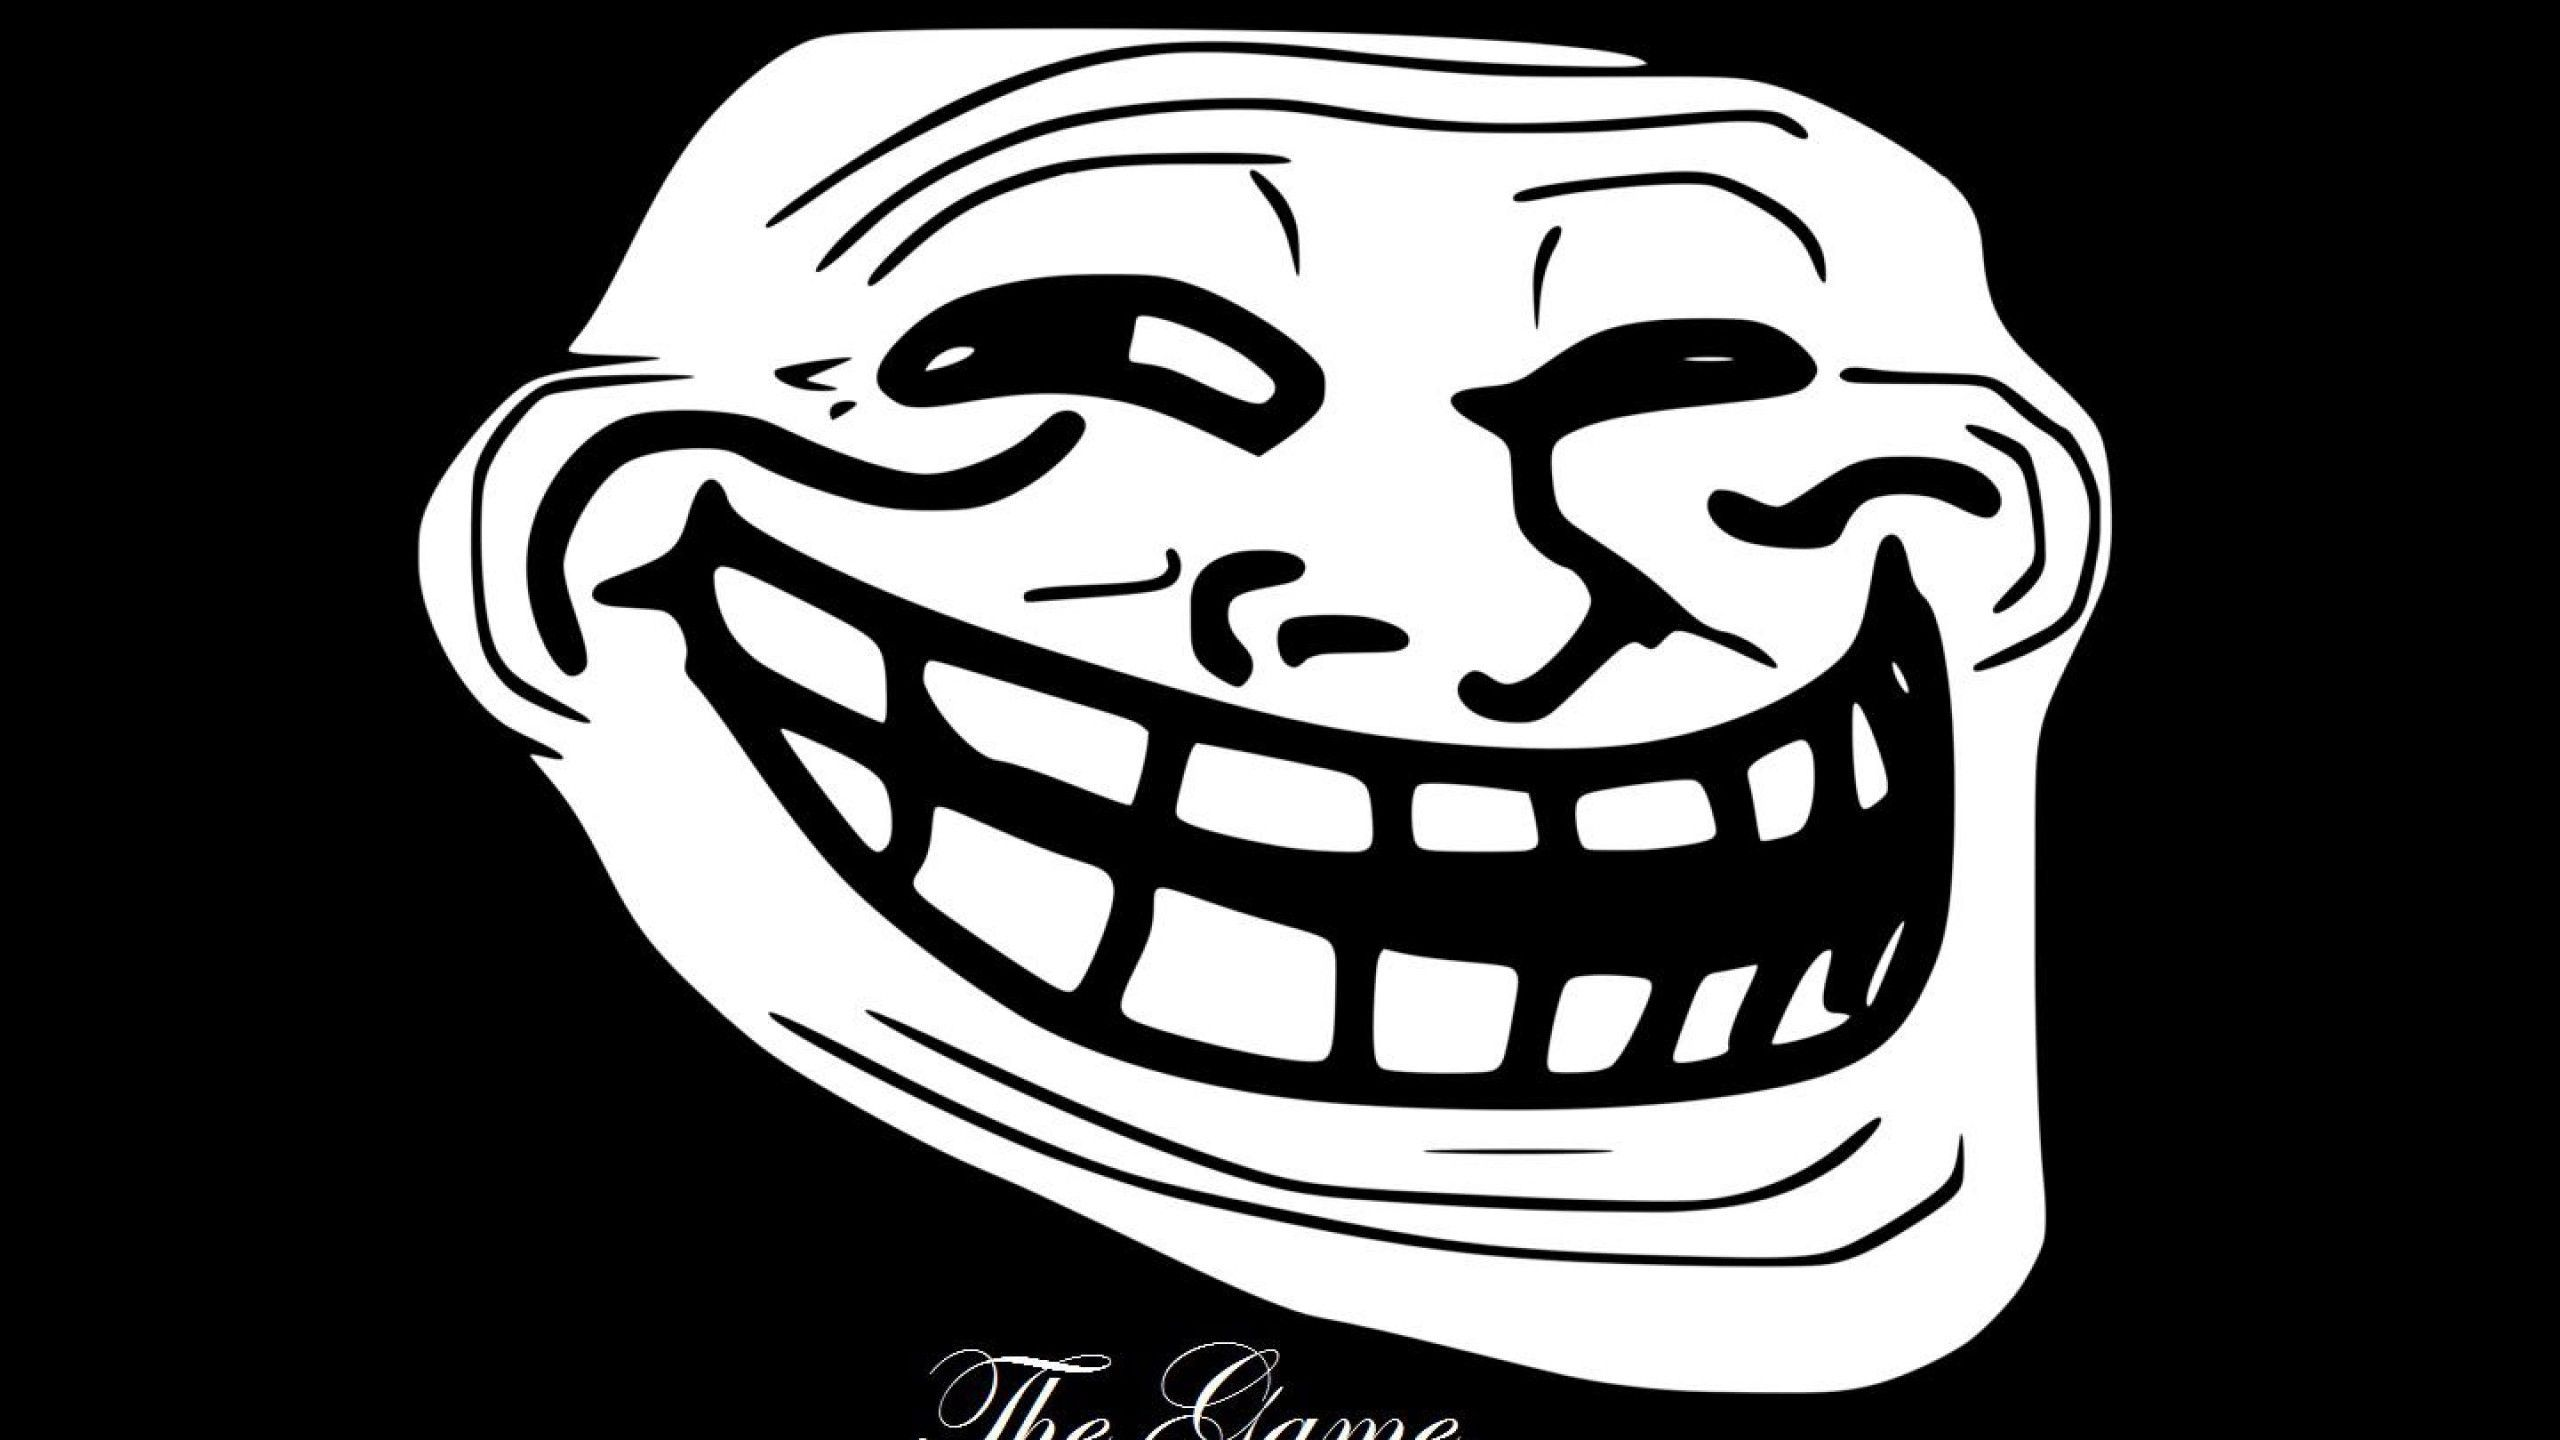 Full hd troll face wallpapers stunning troll face images full hd troll face wallpapers stunning troll face images voltagebd Gallery